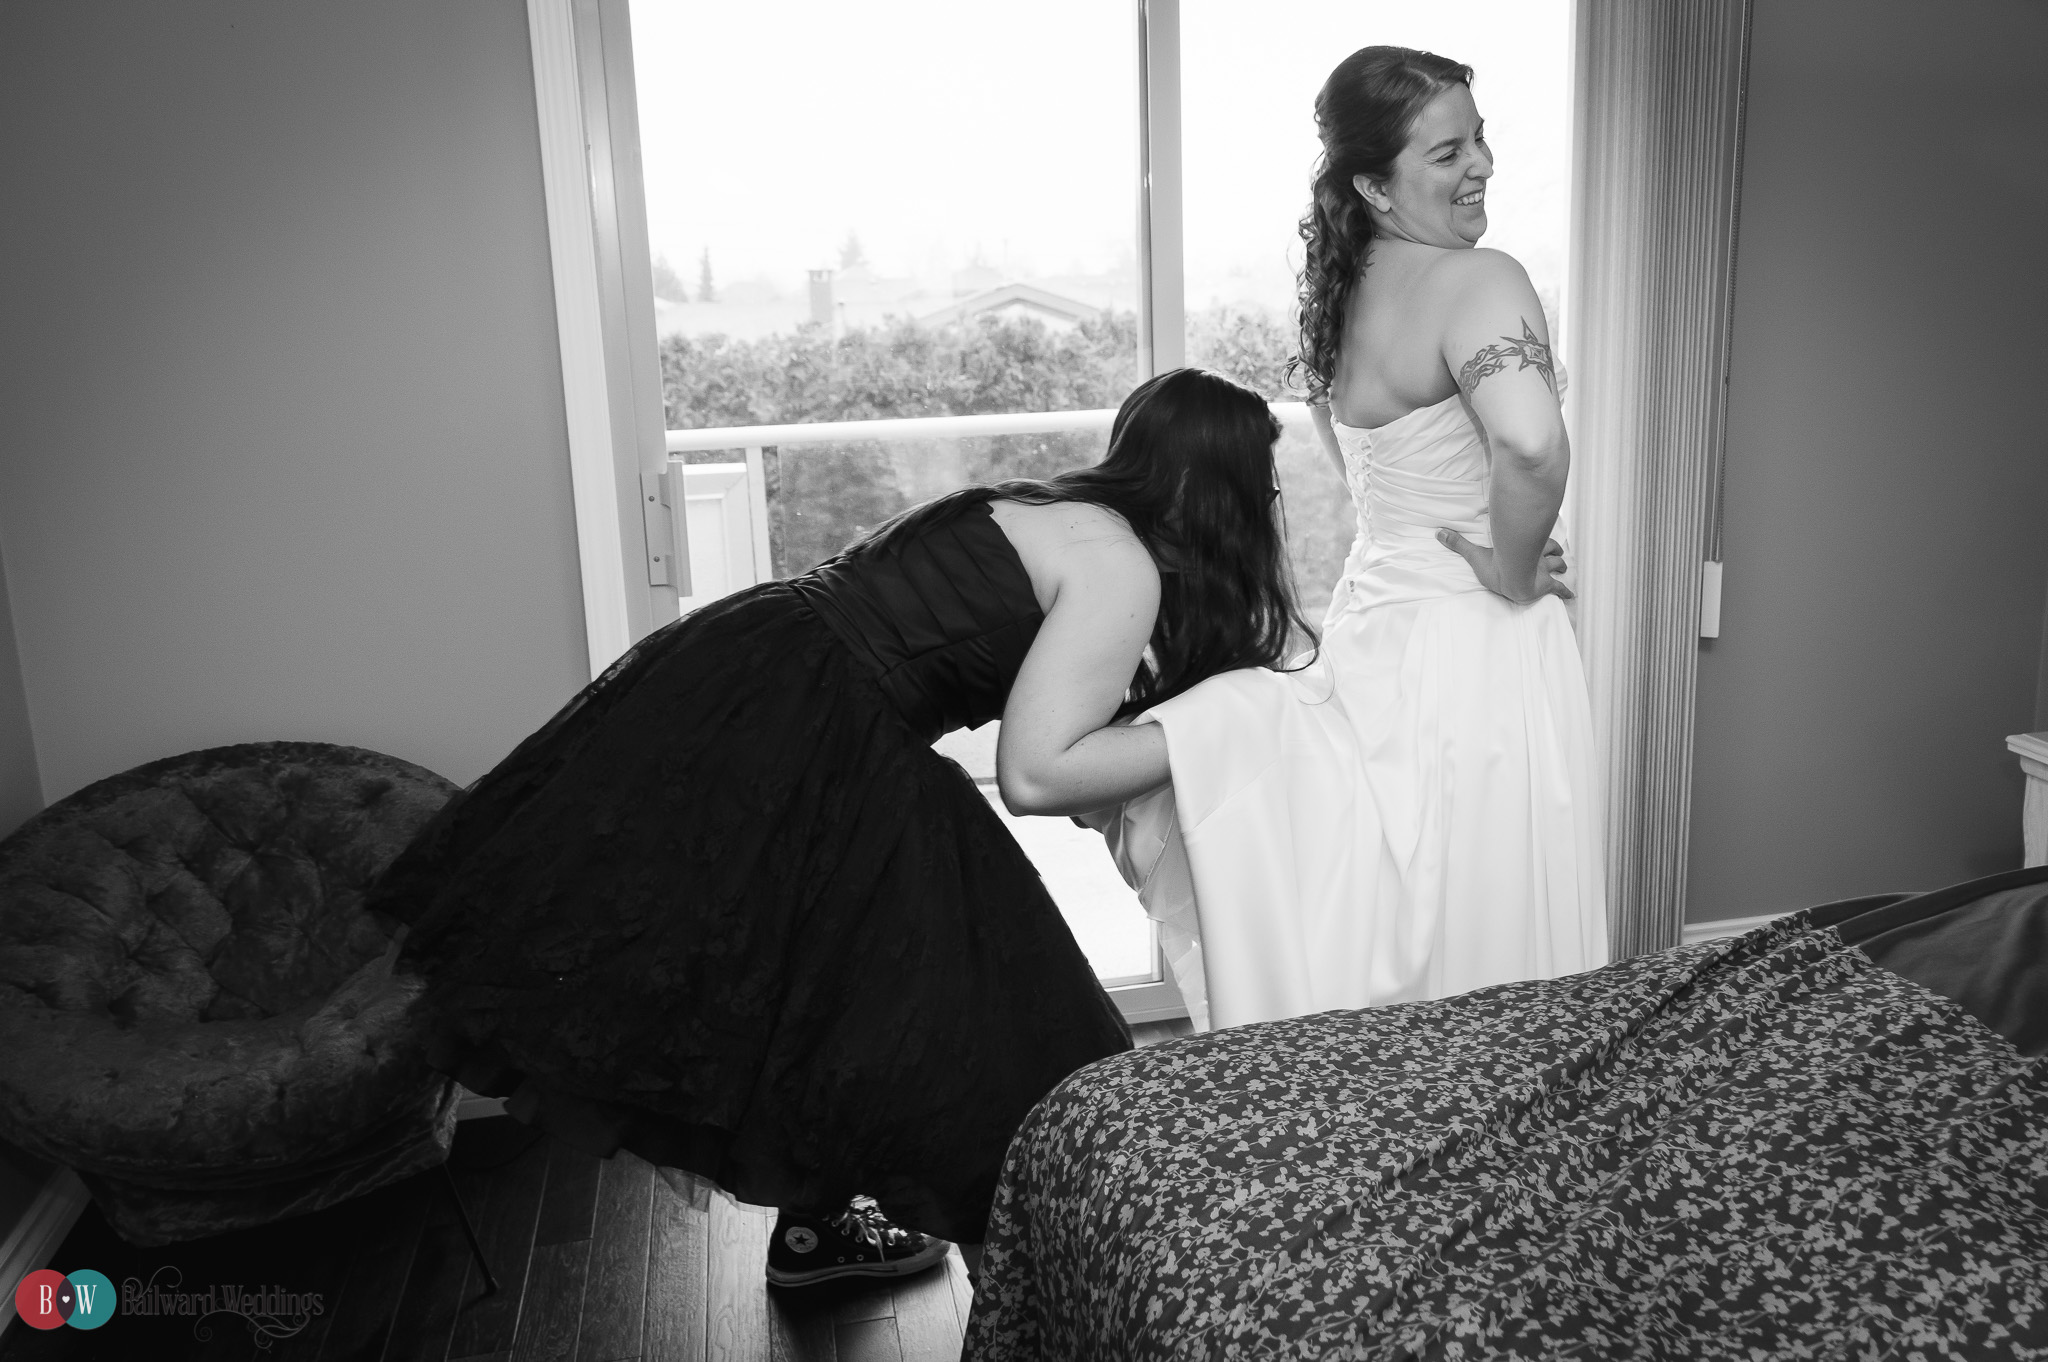 Bride and bridesmaid getting ready, bridesmaid's hand up dress